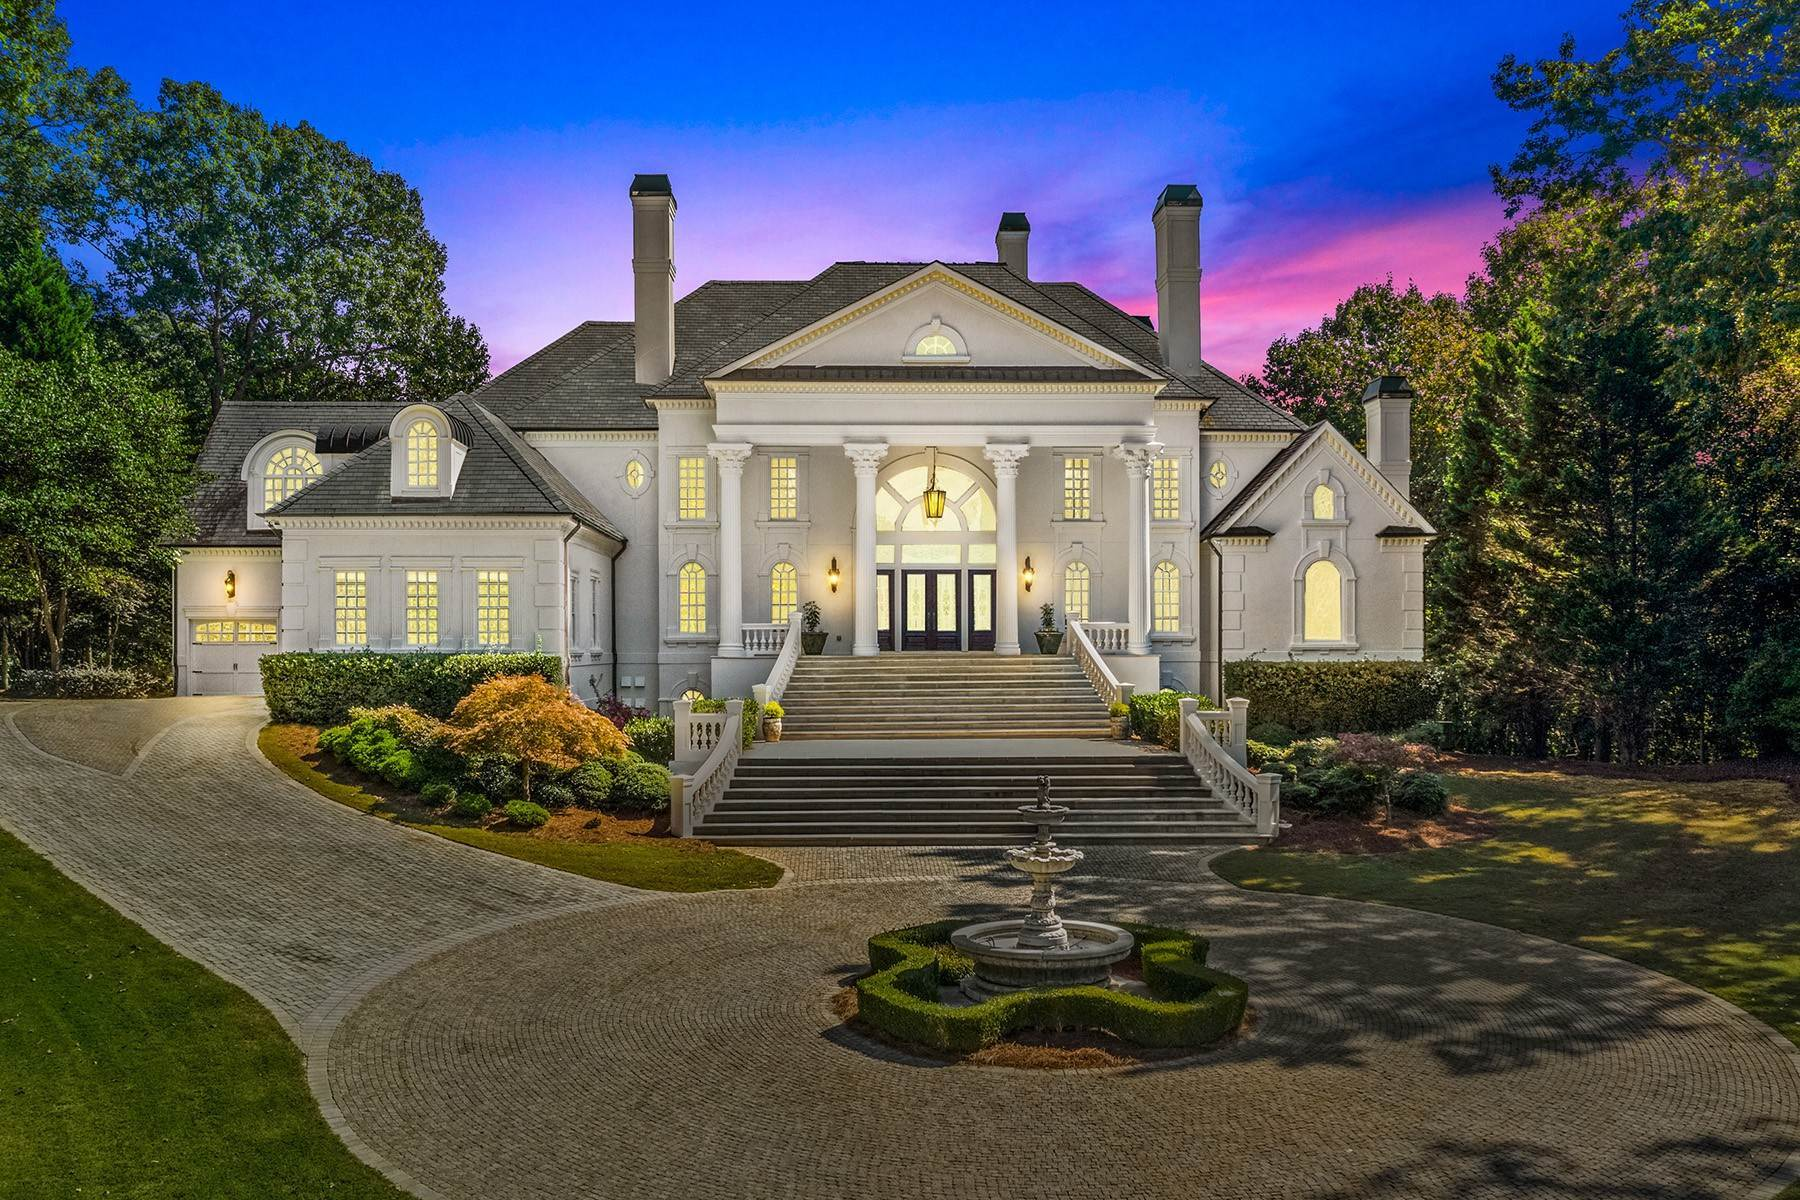 Single Family Homes для того Продажа на Majestic Estate Situated on Over a Two Acre Lot 3377 Nancy Creek Road NW Atlanta, Джорджия 30327 Соединенные Штаты